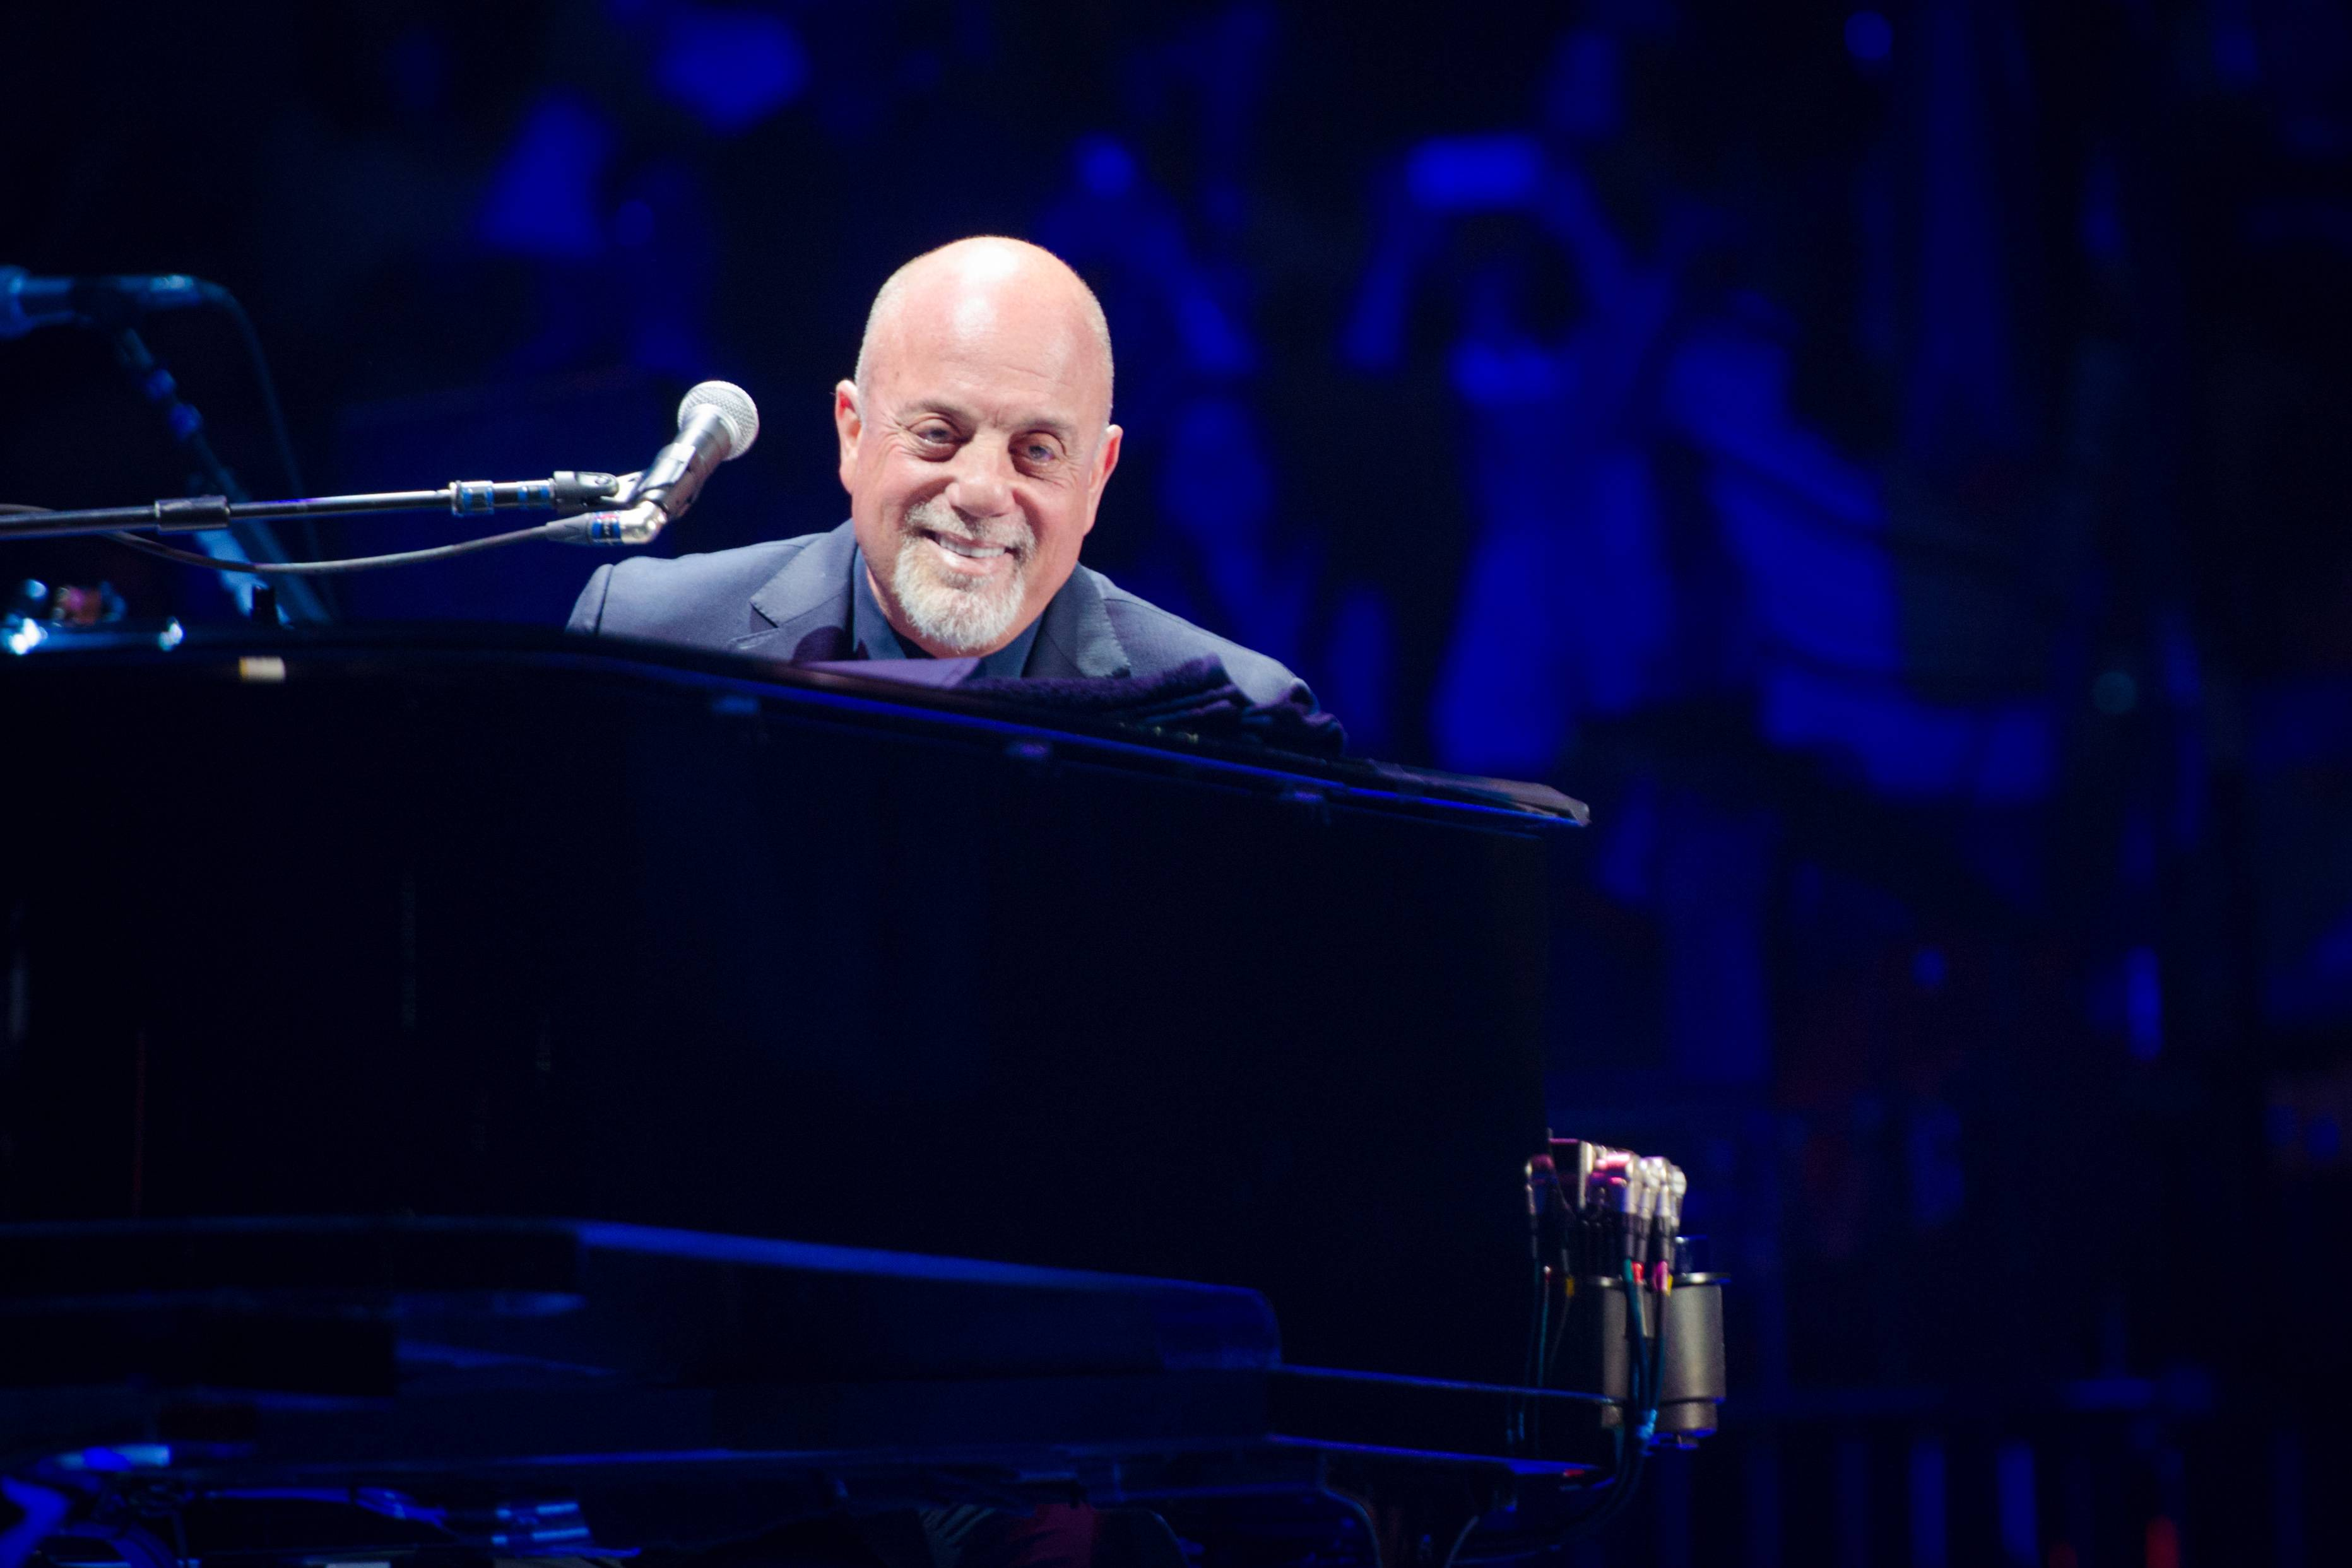 Billy Joel will receive the Library of Congress' Gershwin Prize for Popular Song in November.